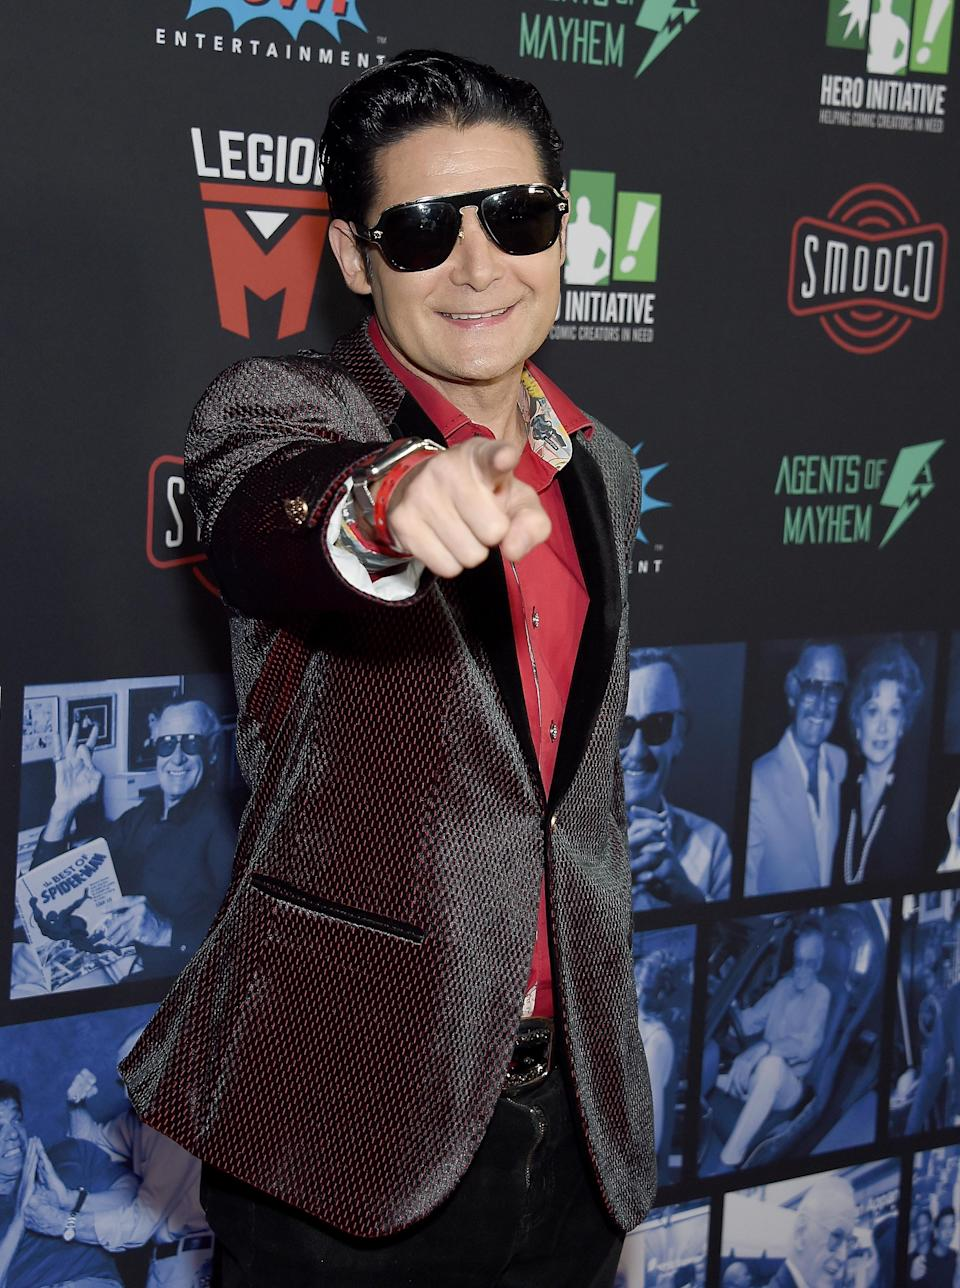 Corey Feldman was the victim of child abuse in Hollywood (Credit: Gregg DeGuire/Getty Images)